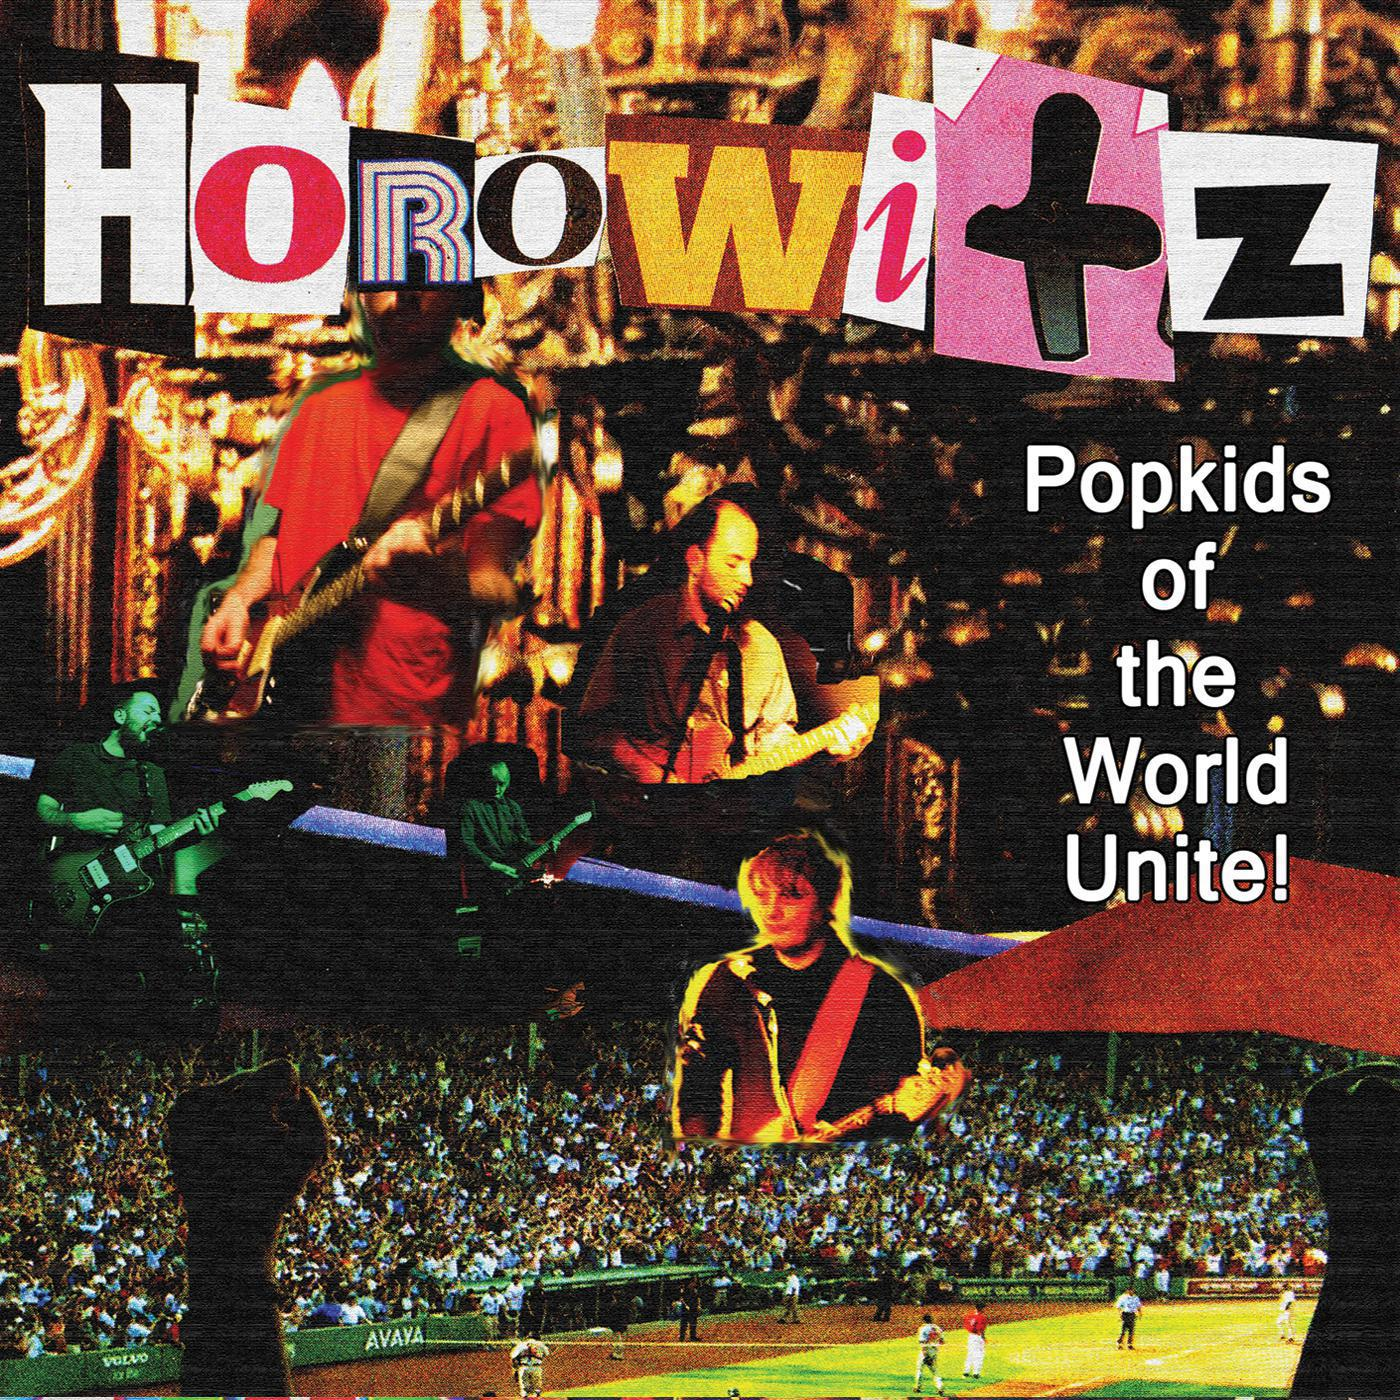 Popkids Of The World Unite!